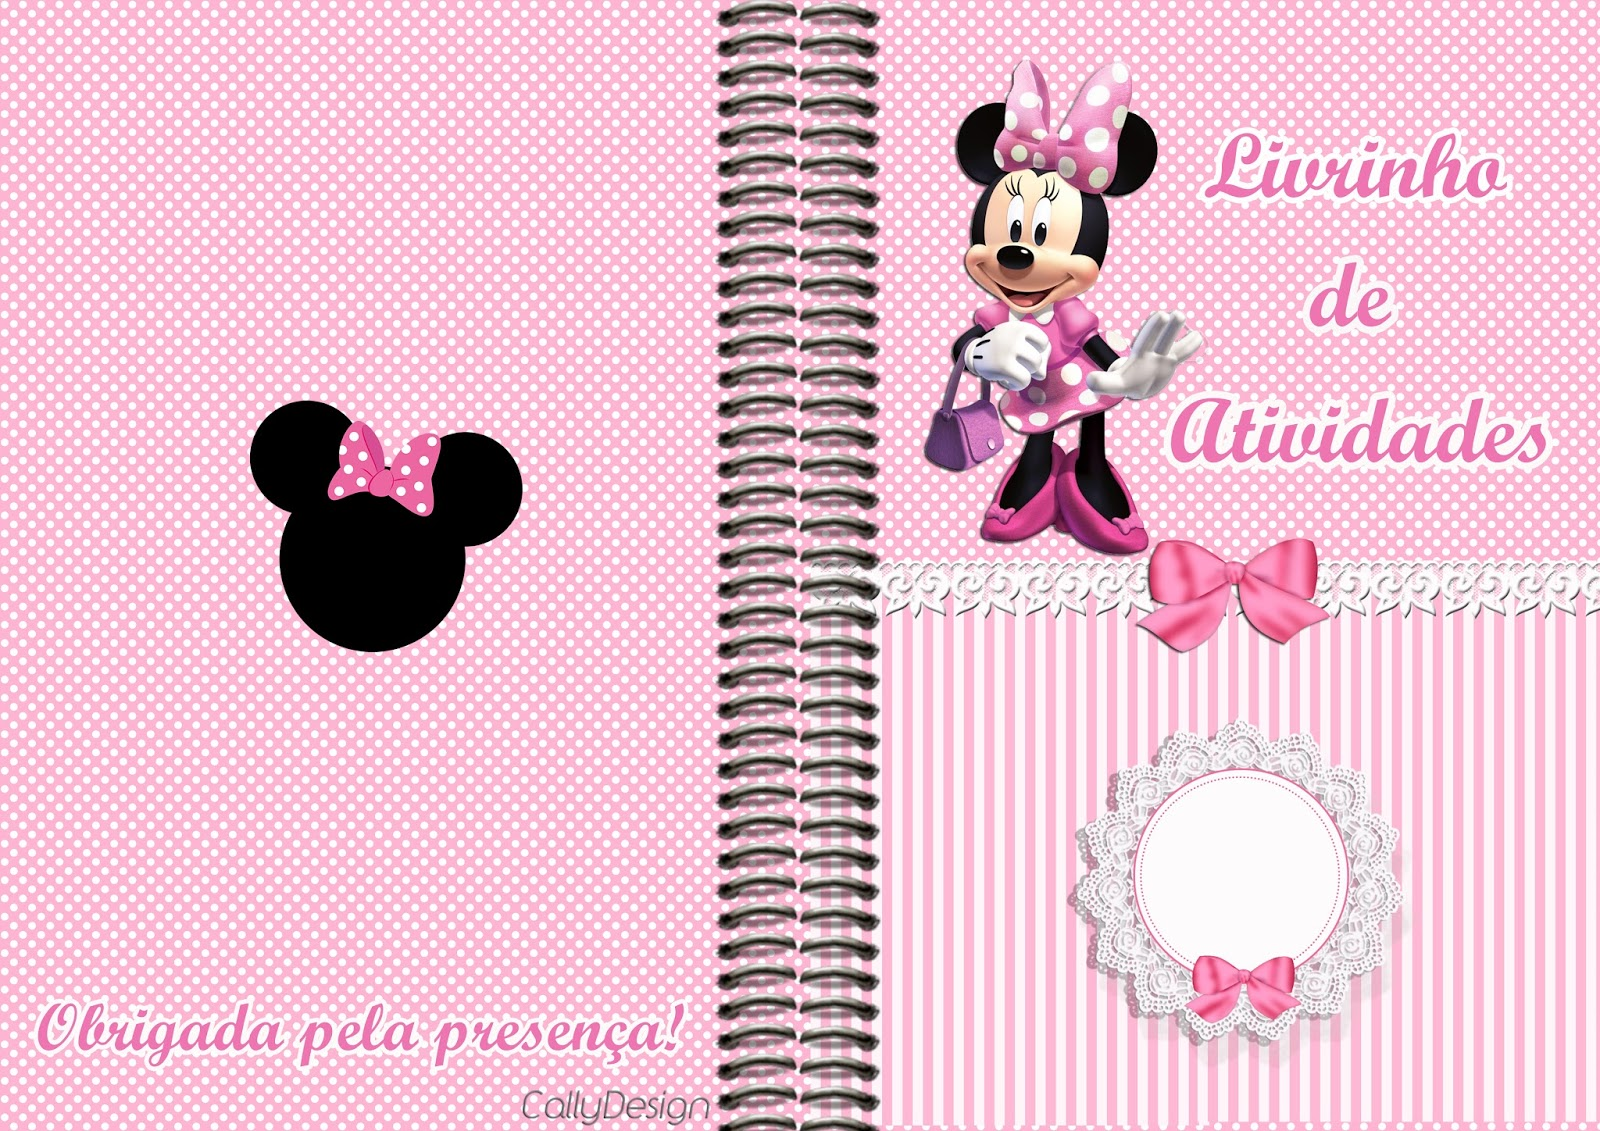 Baby Minnie Mouse Baby Shower Invitations as luxury invitations ideas